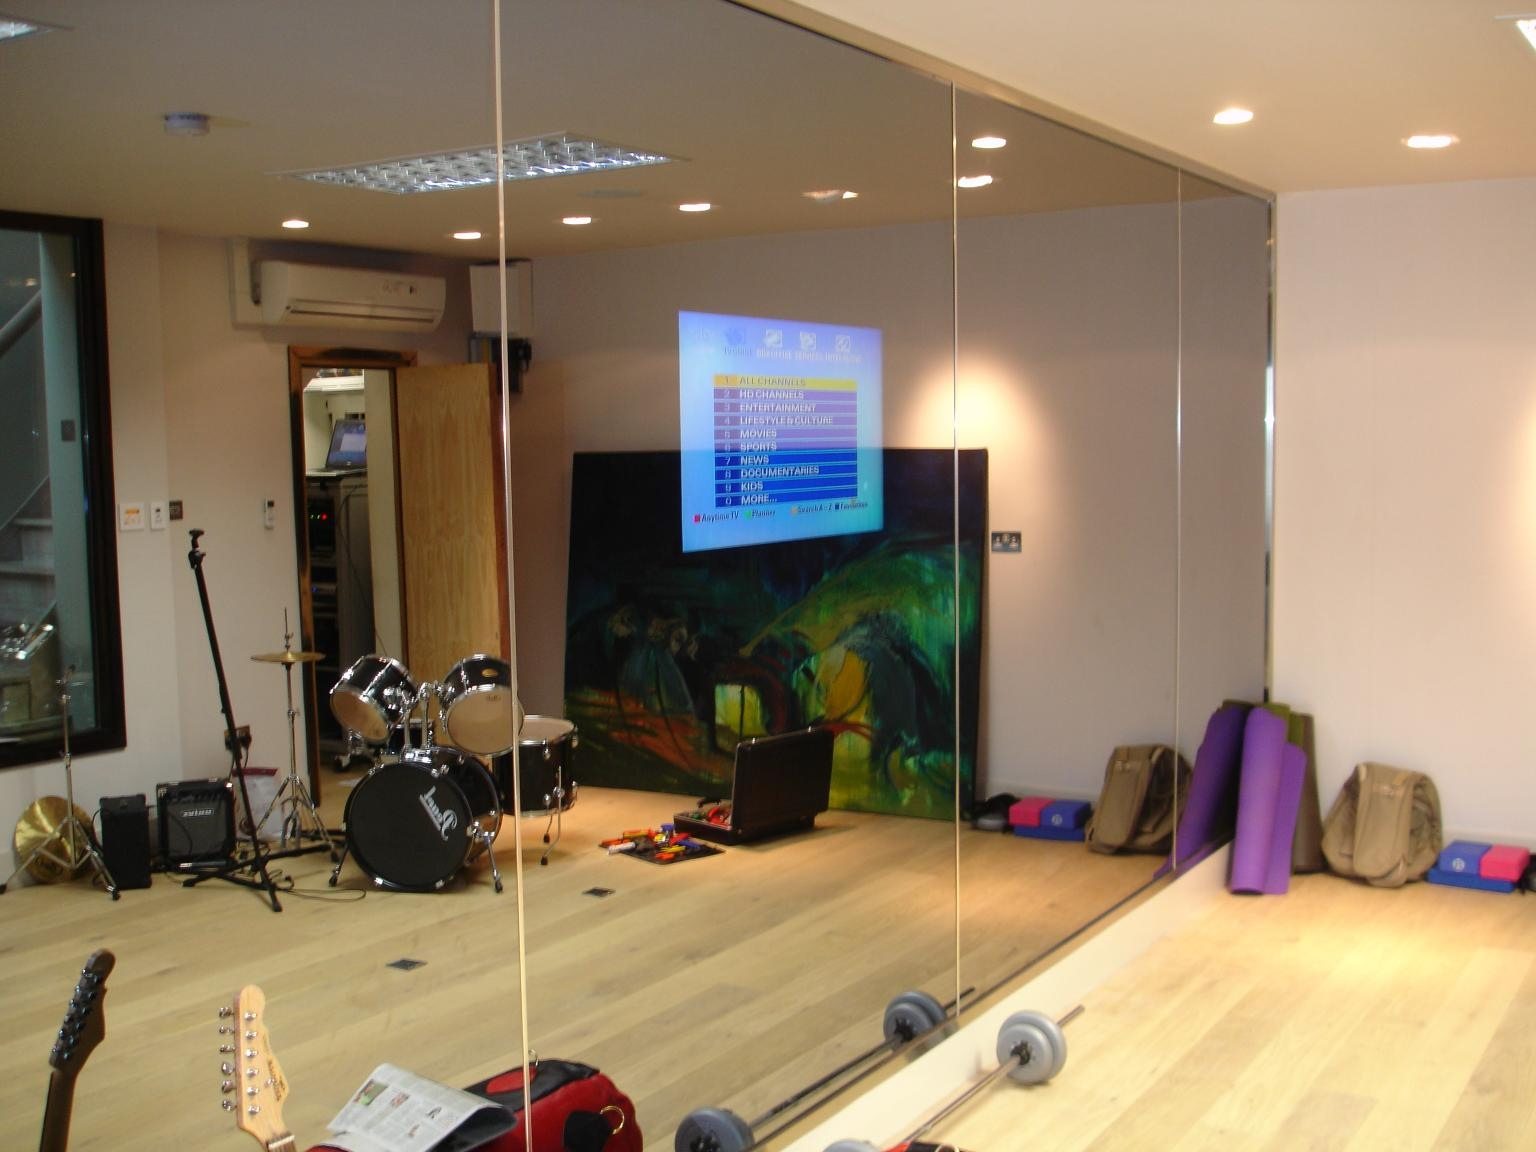 mirrortv-residential-gym